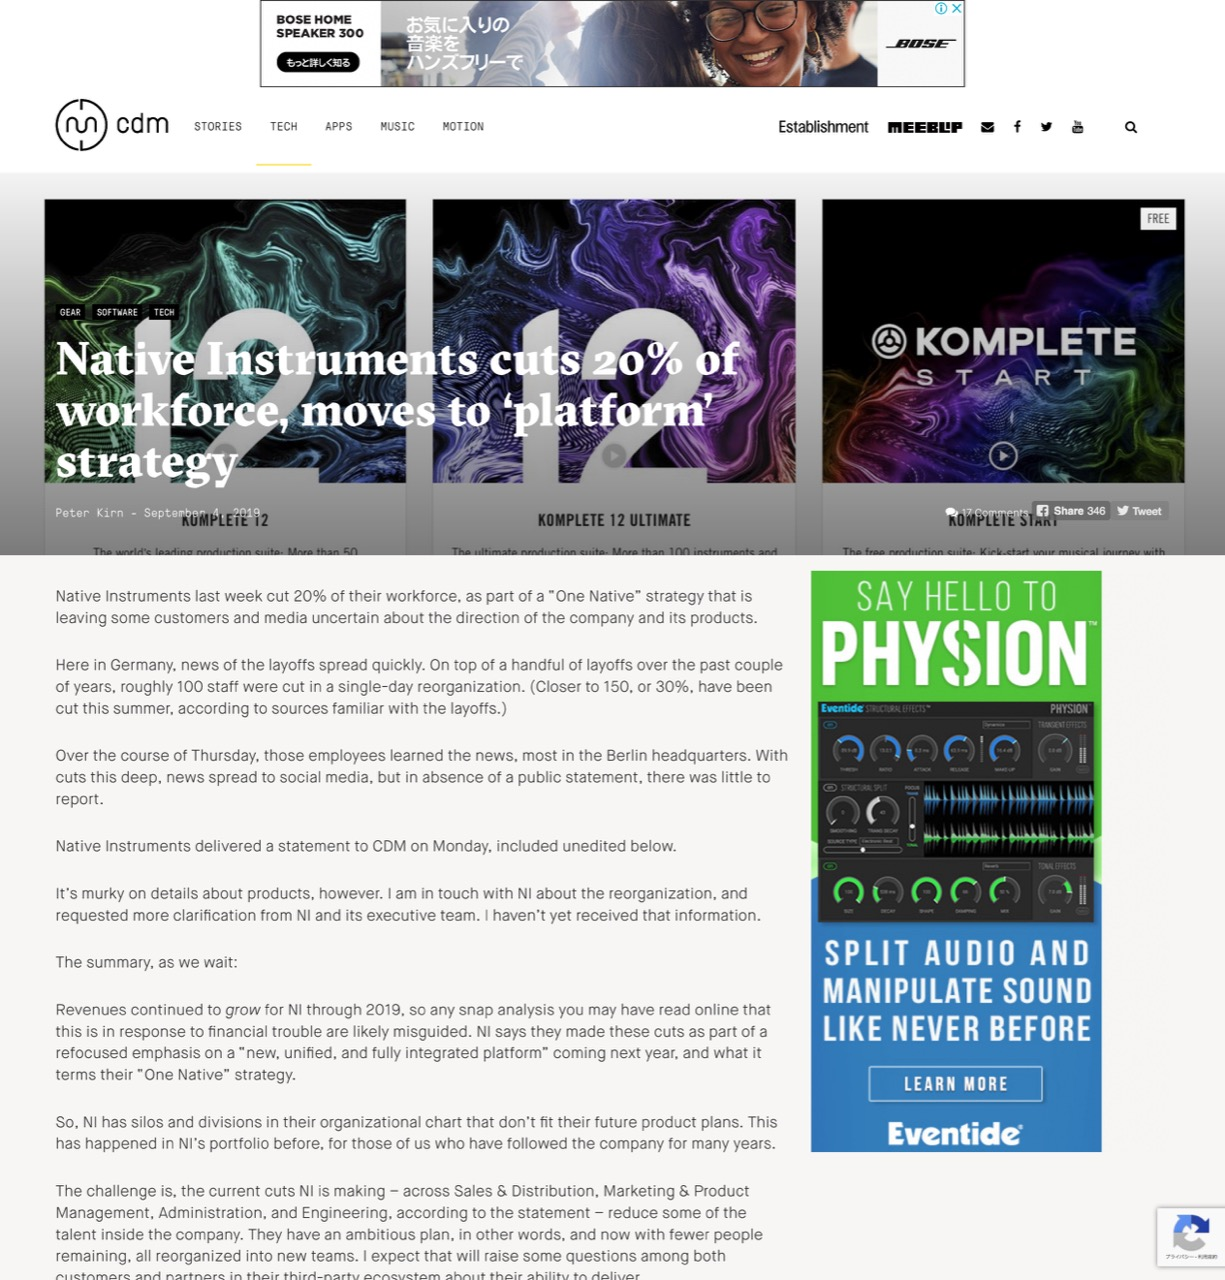 Native Instruments cuts 20% of workforce, moves to 'platform' strategy - CDM Create Digital Music